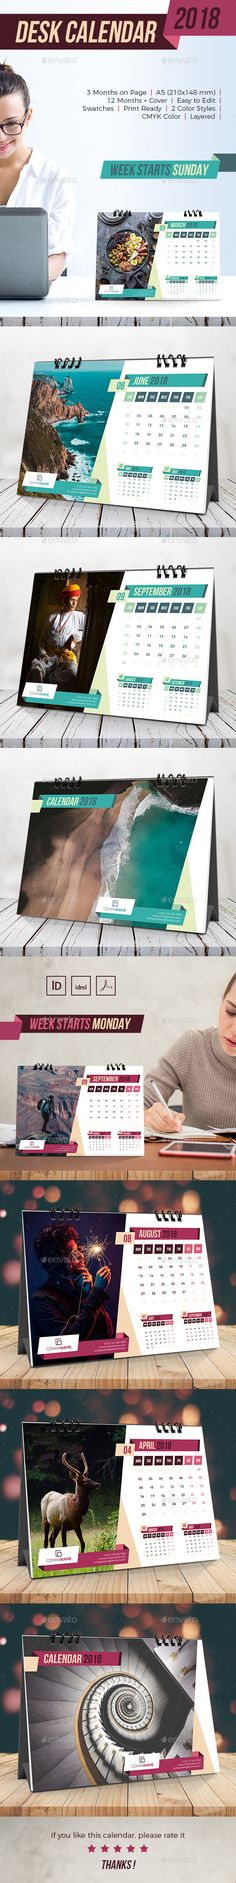 Creative Desk Calendar This is 12 Months Cover Unique & Modern Calendar Template, Very easy to use and customize. Stationery Printing, Stationery Templates, Stationery Design, Calendar Templates, Design Templates, Calendar 2019 Design, Calendar 2018, Office Calendar, Desk Calendars